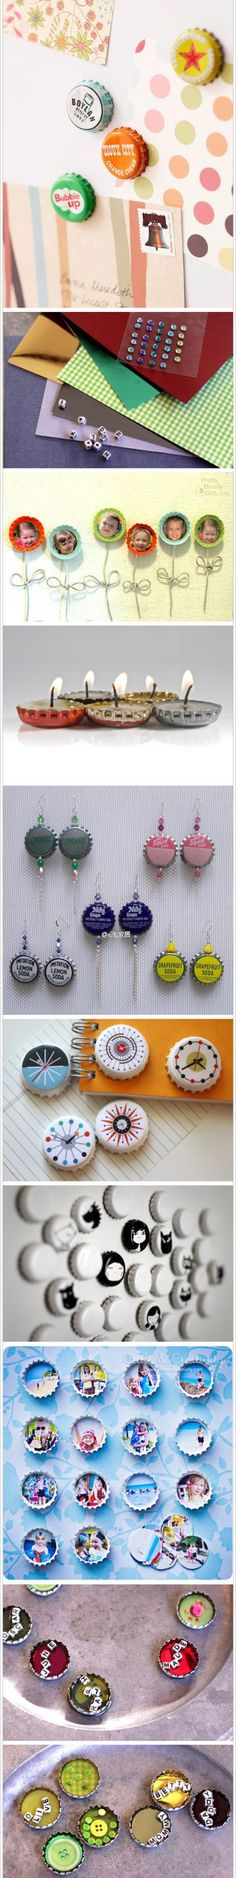 Lots of ways to use recycled bottle caps